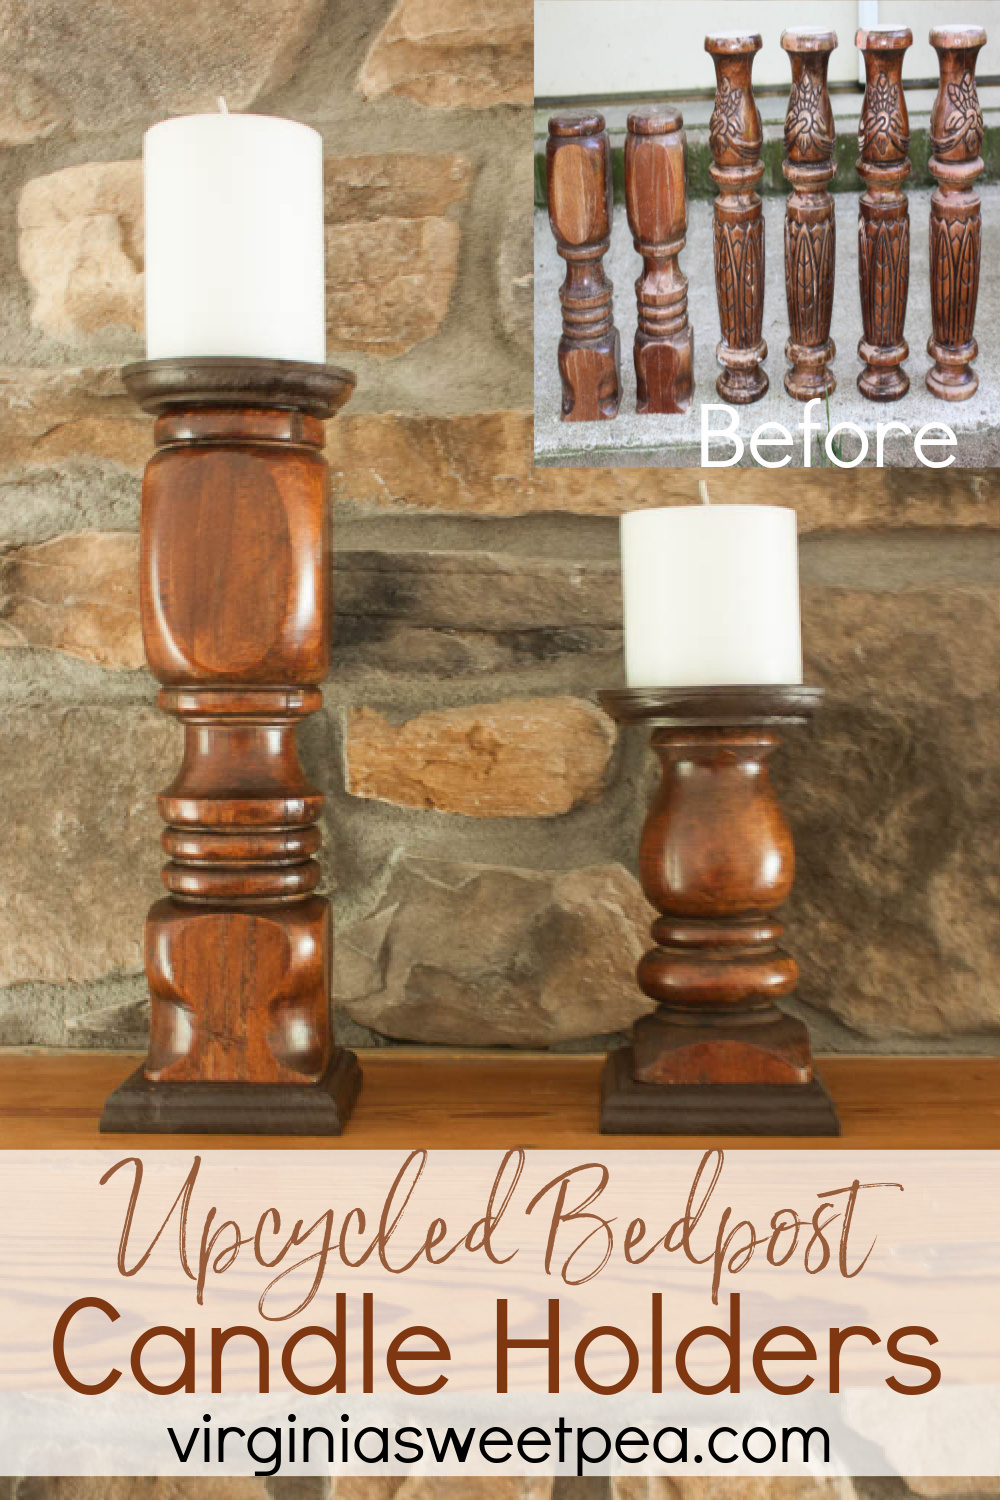 DIY Candlesticks using Upcycled Bedposts - Bedposts found in a trash pile were transformed into beautiful candle holders.  Get the step-by-step tutorial to learn how to make your own.  #upcycledbedposts #upcycledproject #diycandlesticks #diycandleholders via @spaula